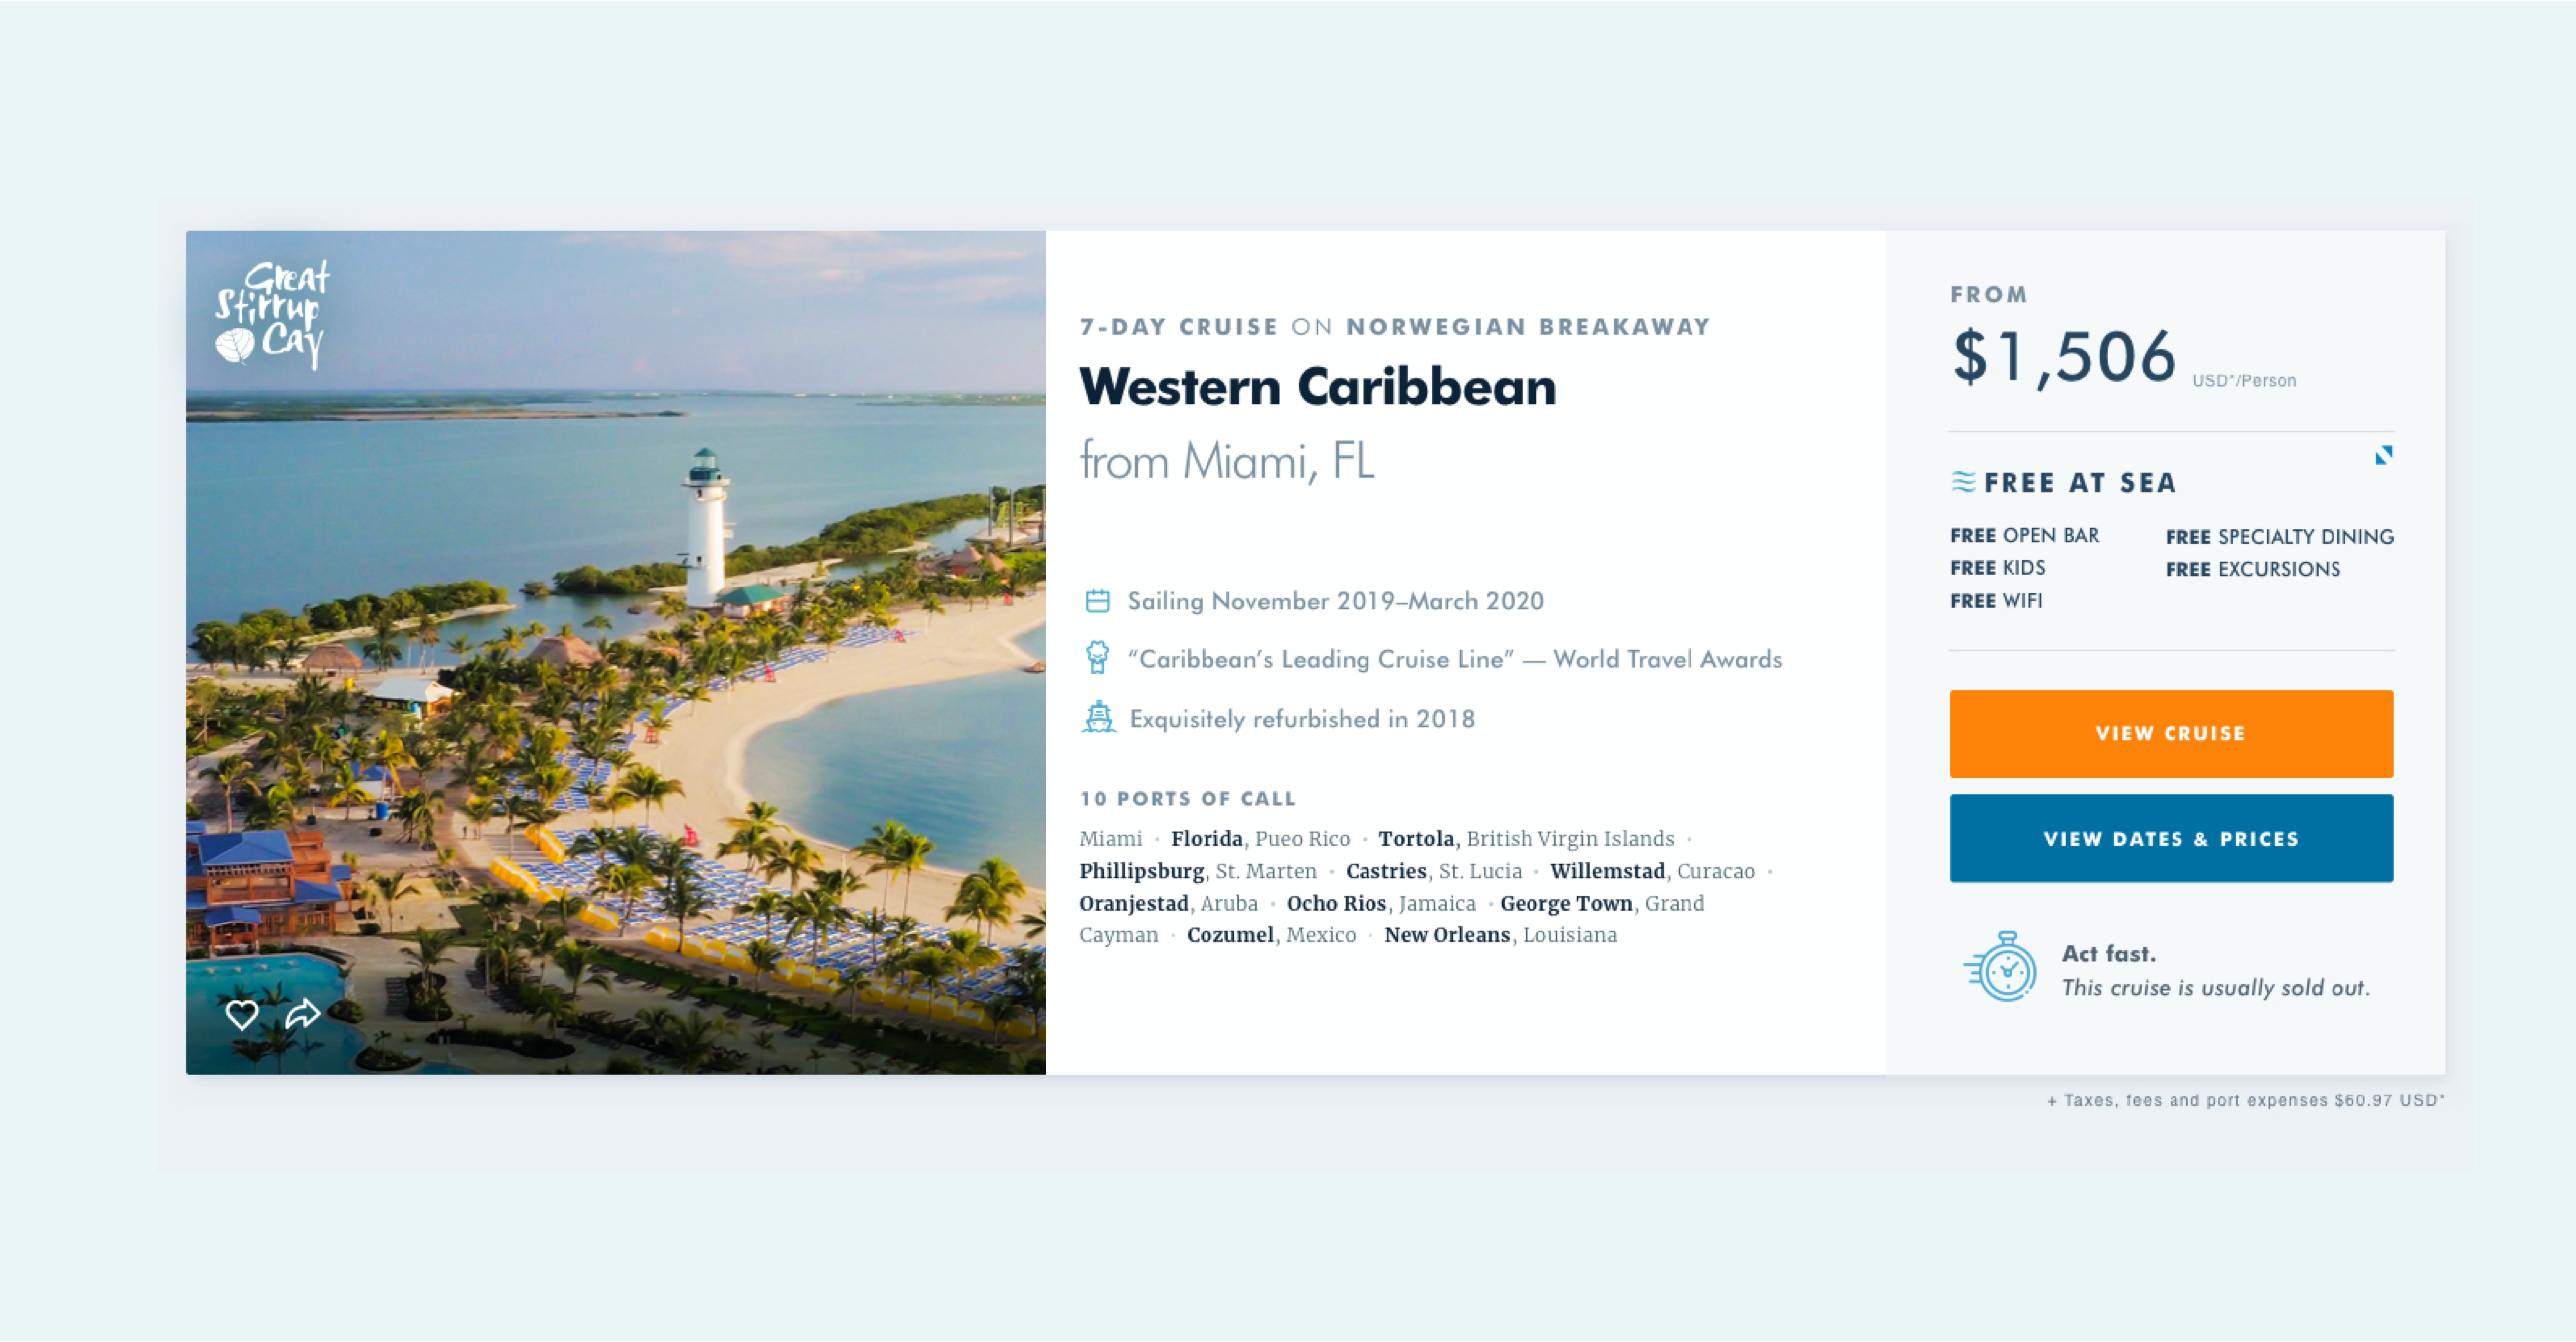 Cruise card from ncl.com showing image on the left of Great Stirrup Cay and a cruise to the Western Caribbean.